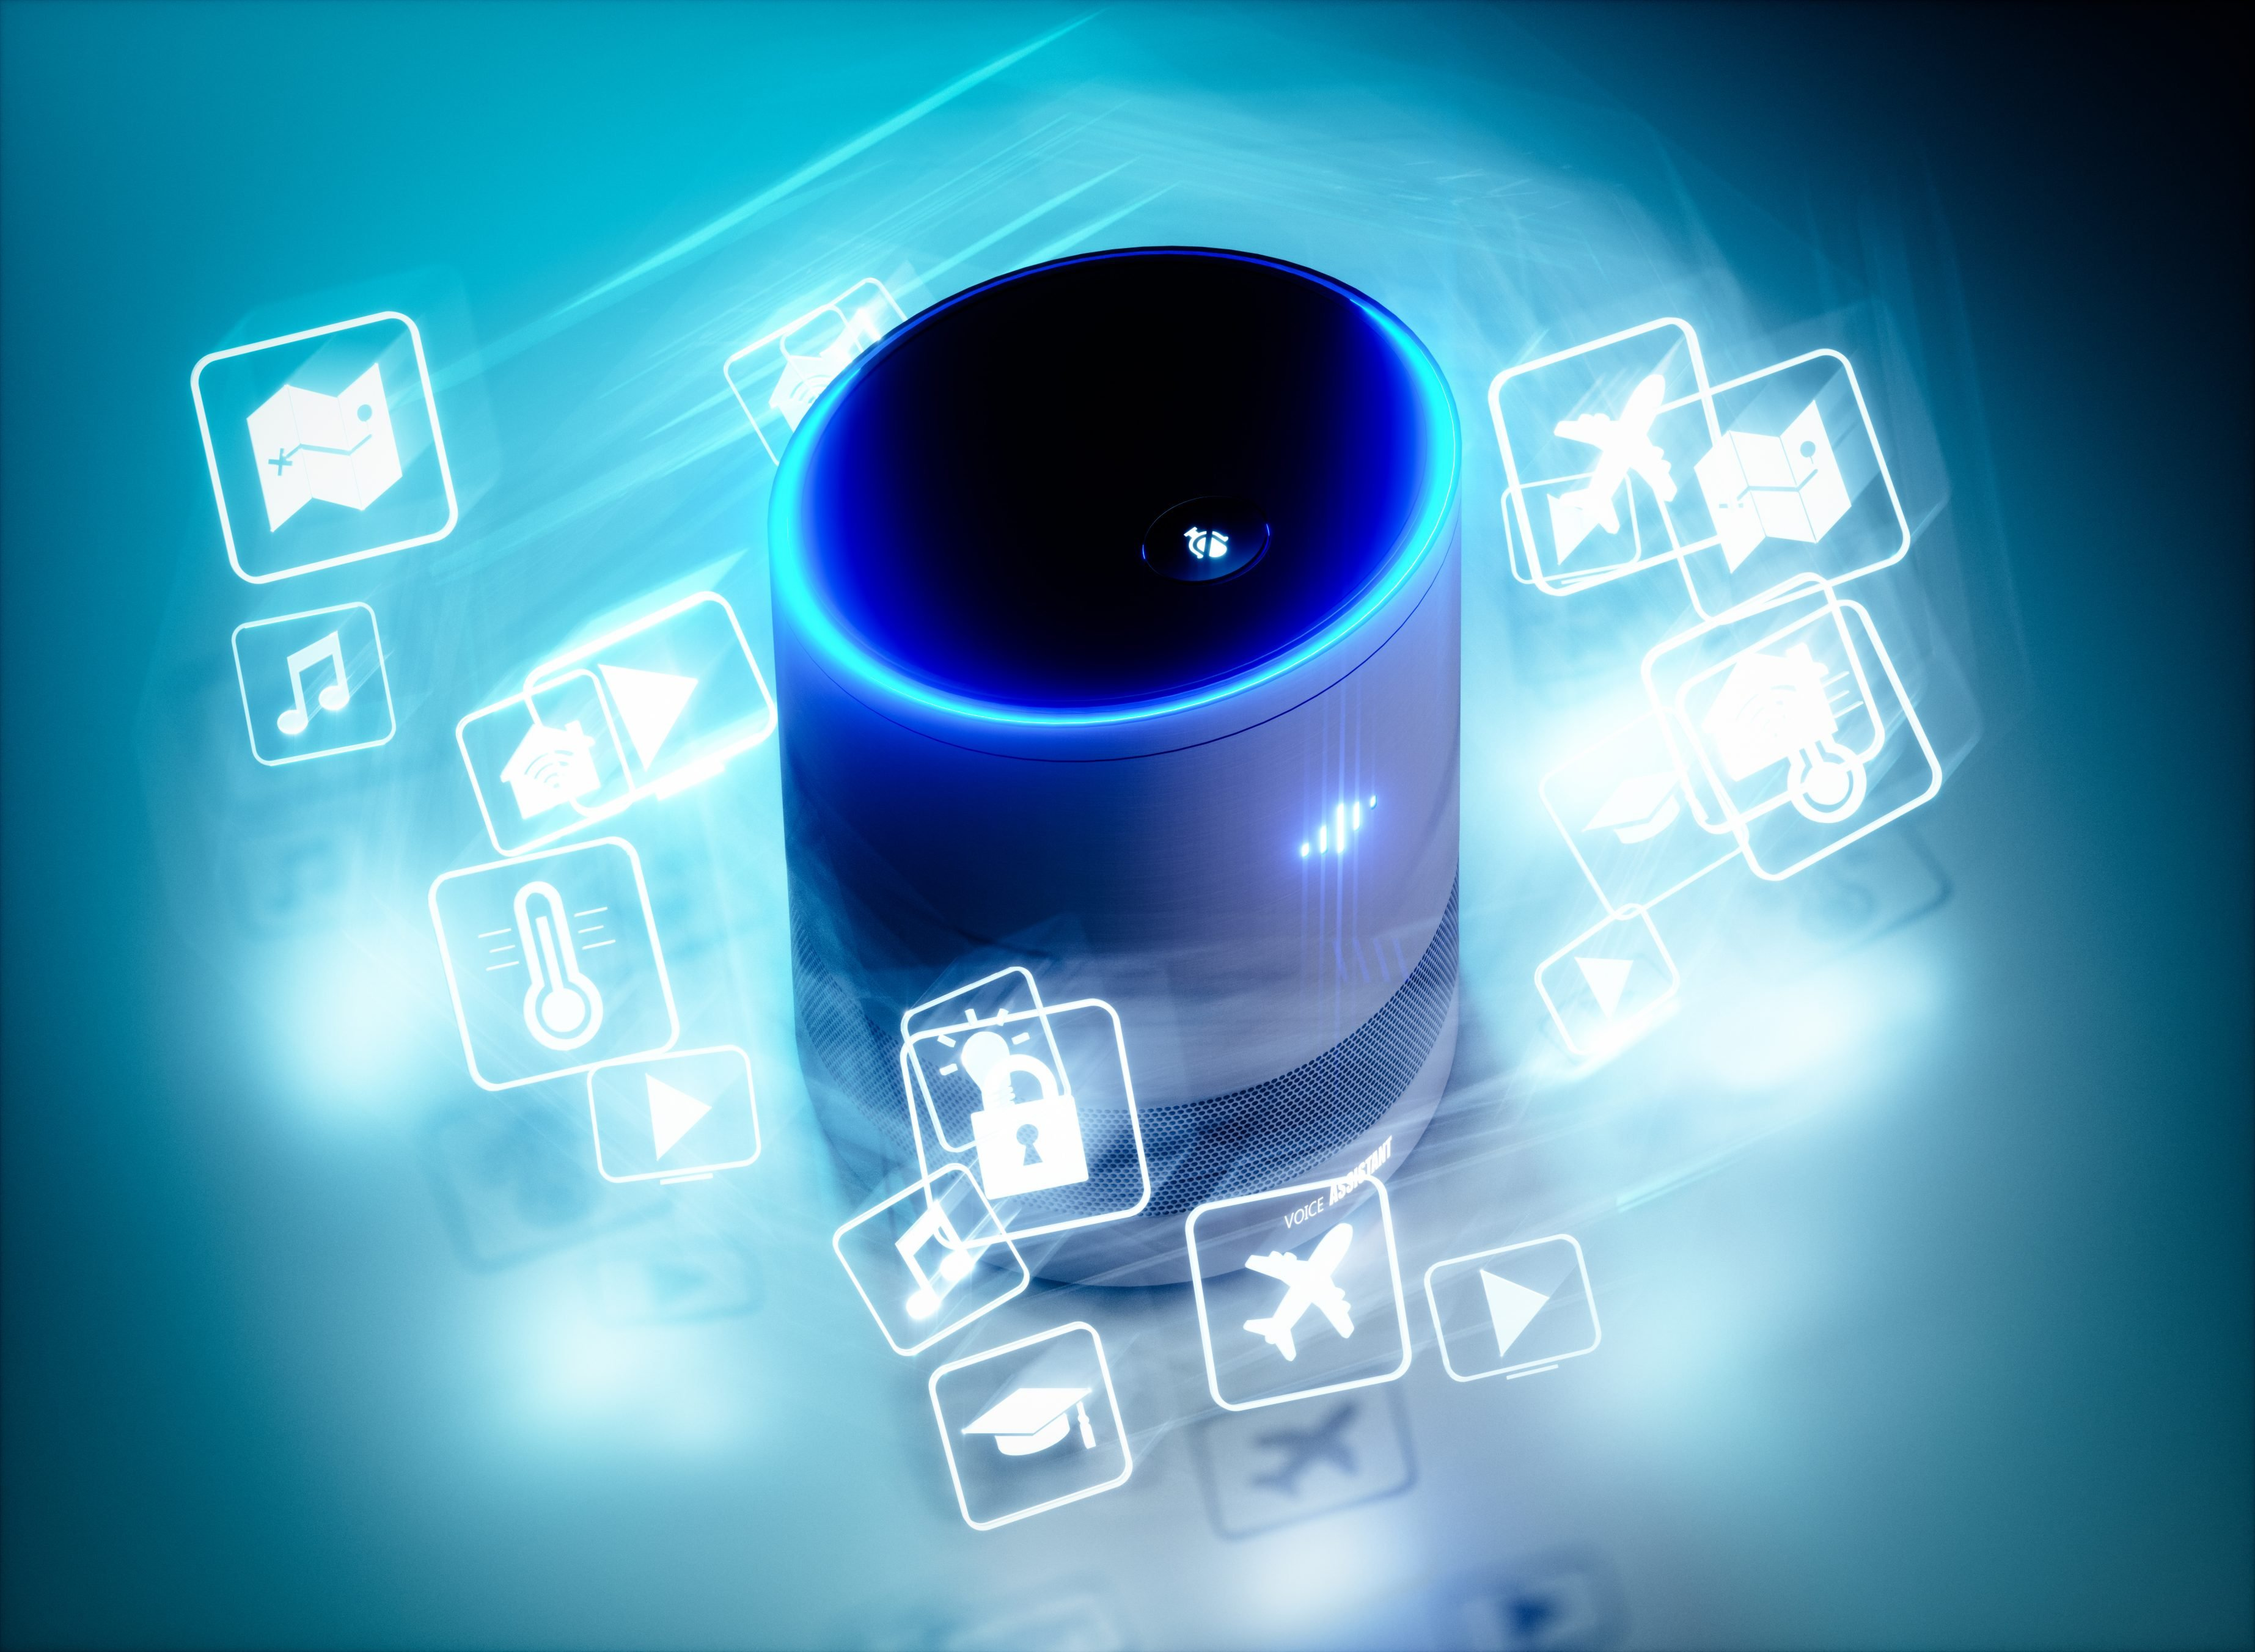 Concept of home intelligent voice activated assistant with voice command icons. 3D rendering concept of hi tech futuristic artificial intelligence speech recognition technology.